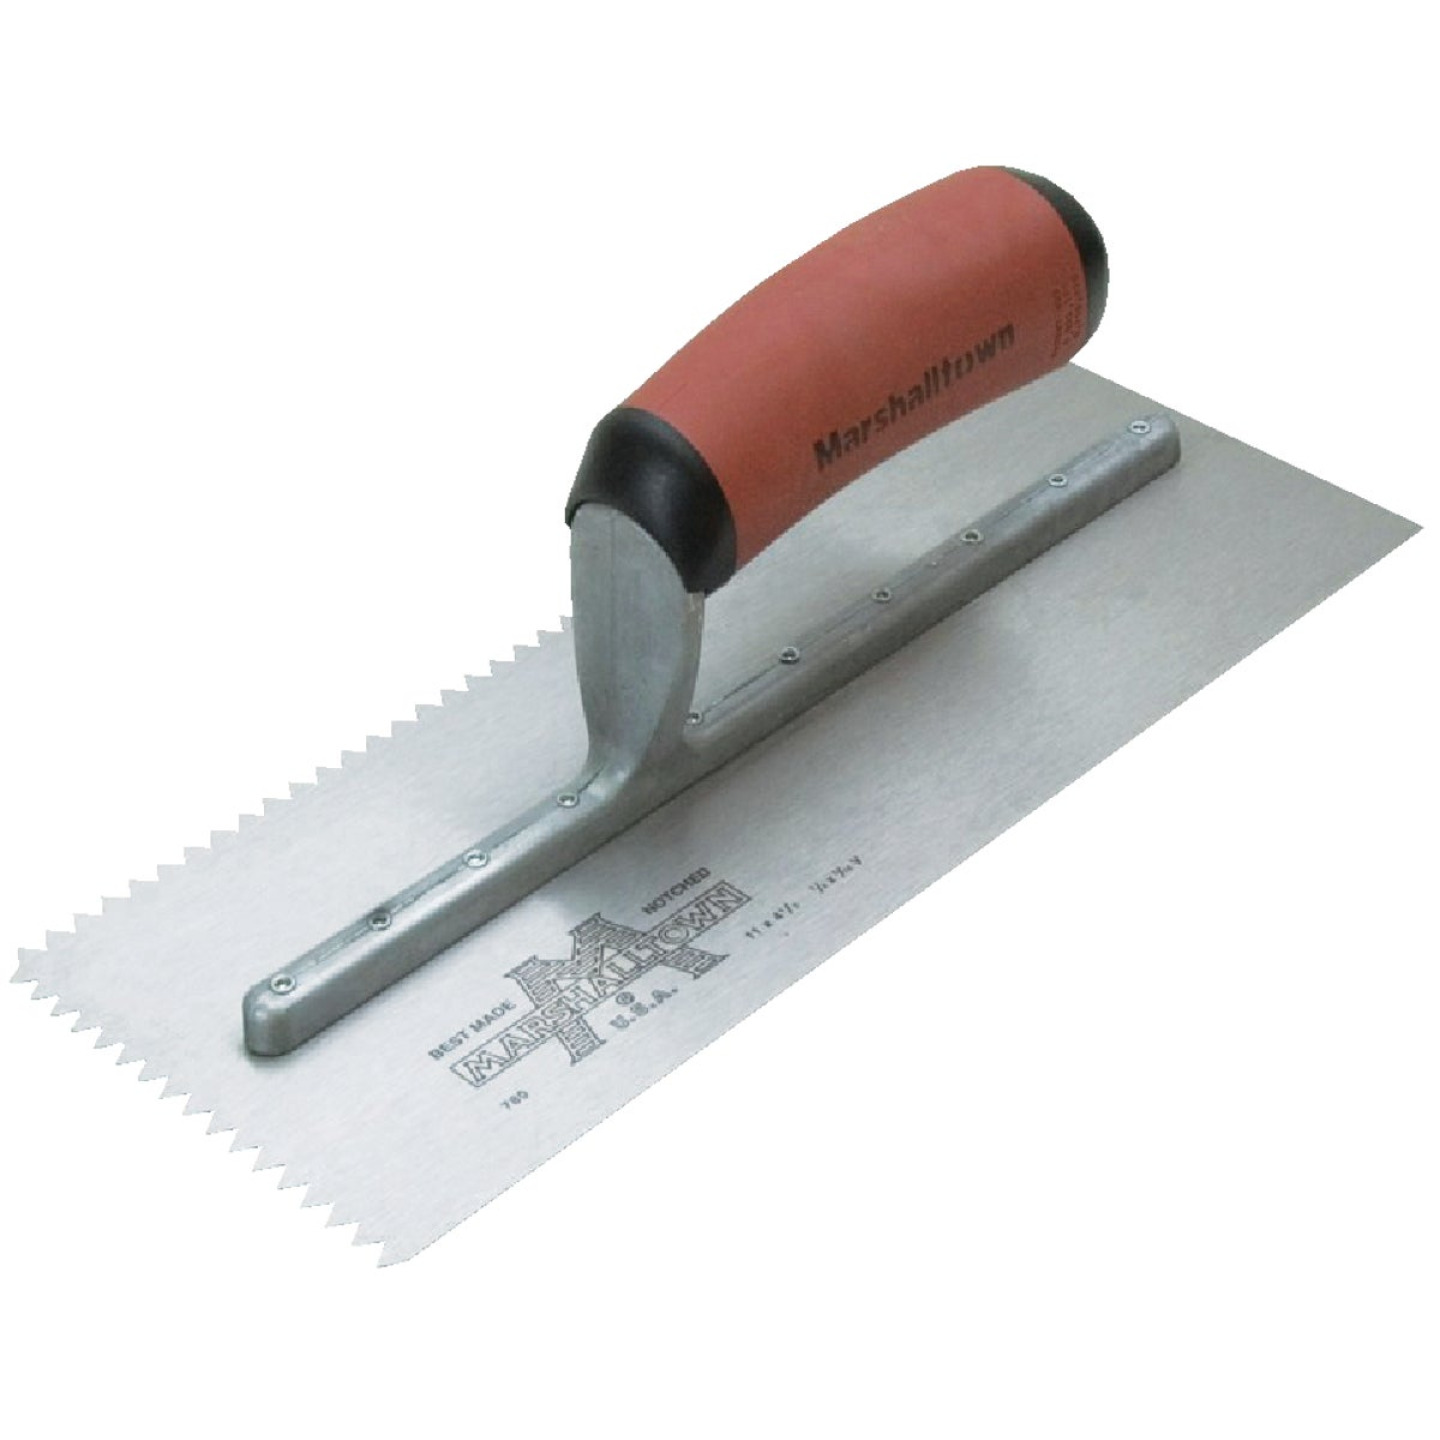 Marshalltown 3/16 In. V-Notched Trowel w/DuraSoft Handle Image 1